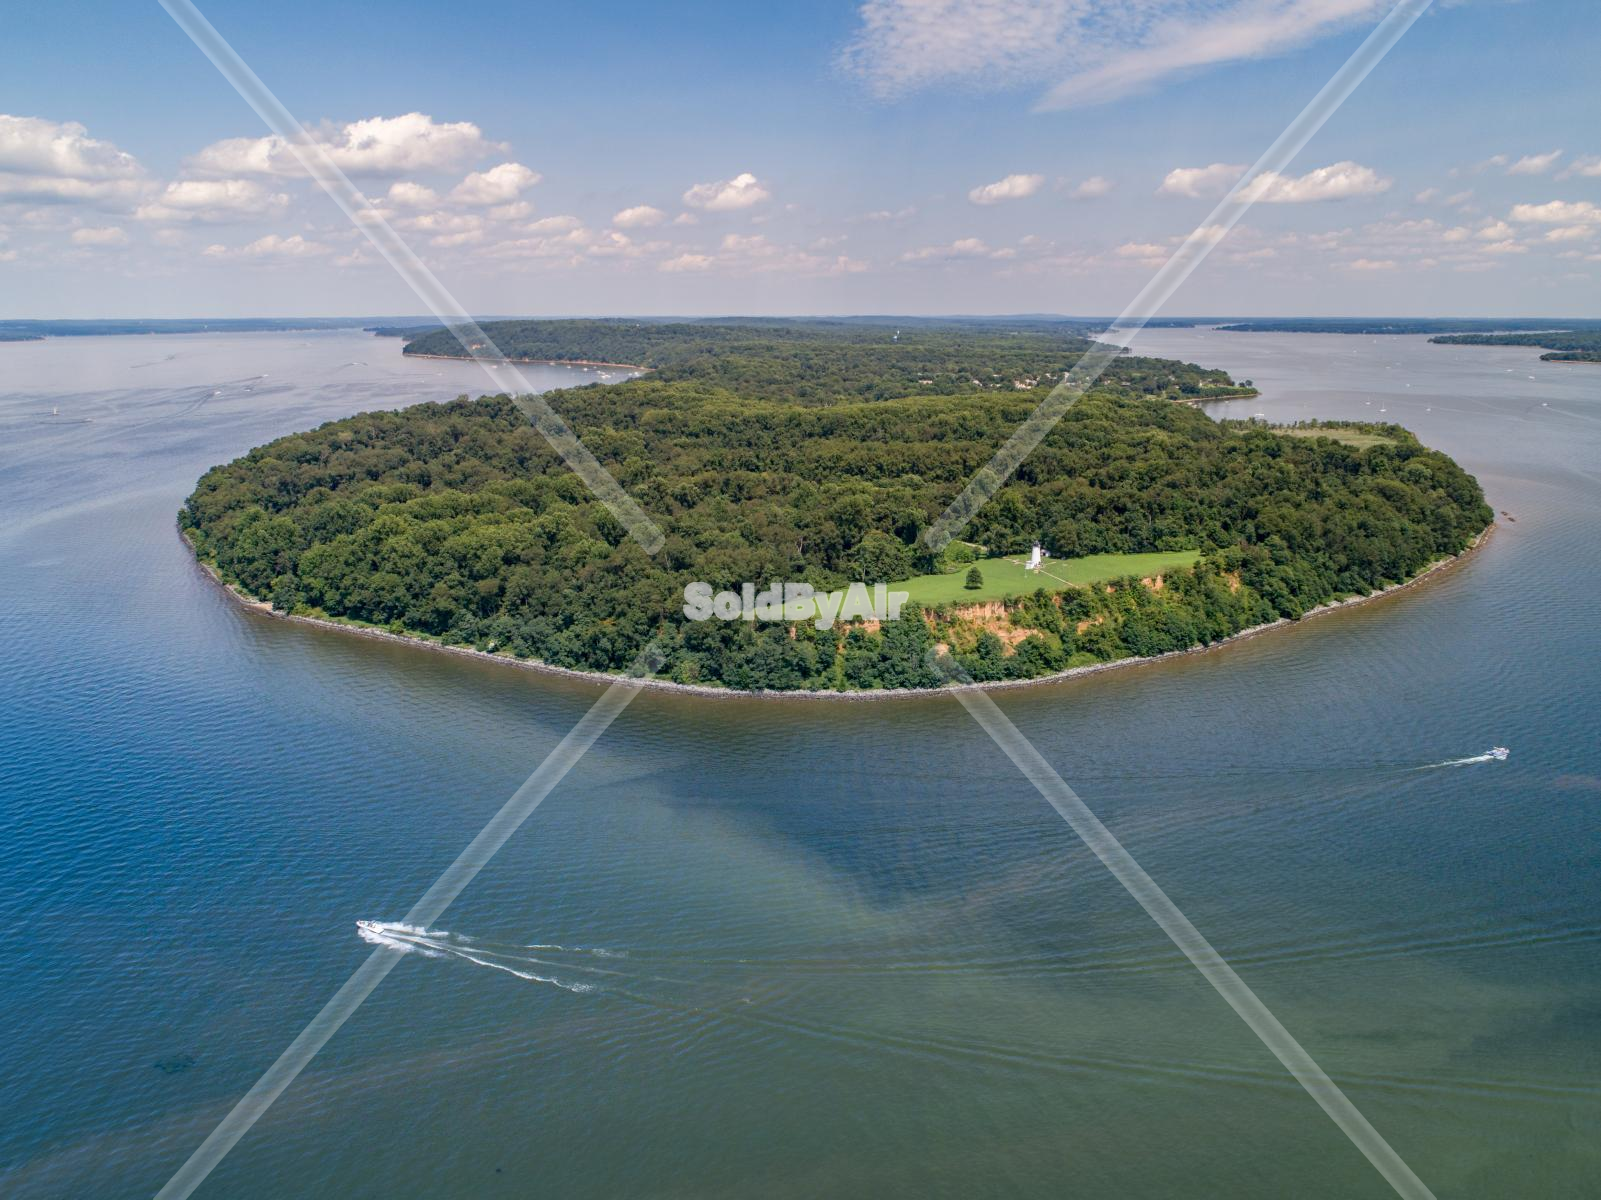 Drone Photo of Turkey Point in North East Maryland